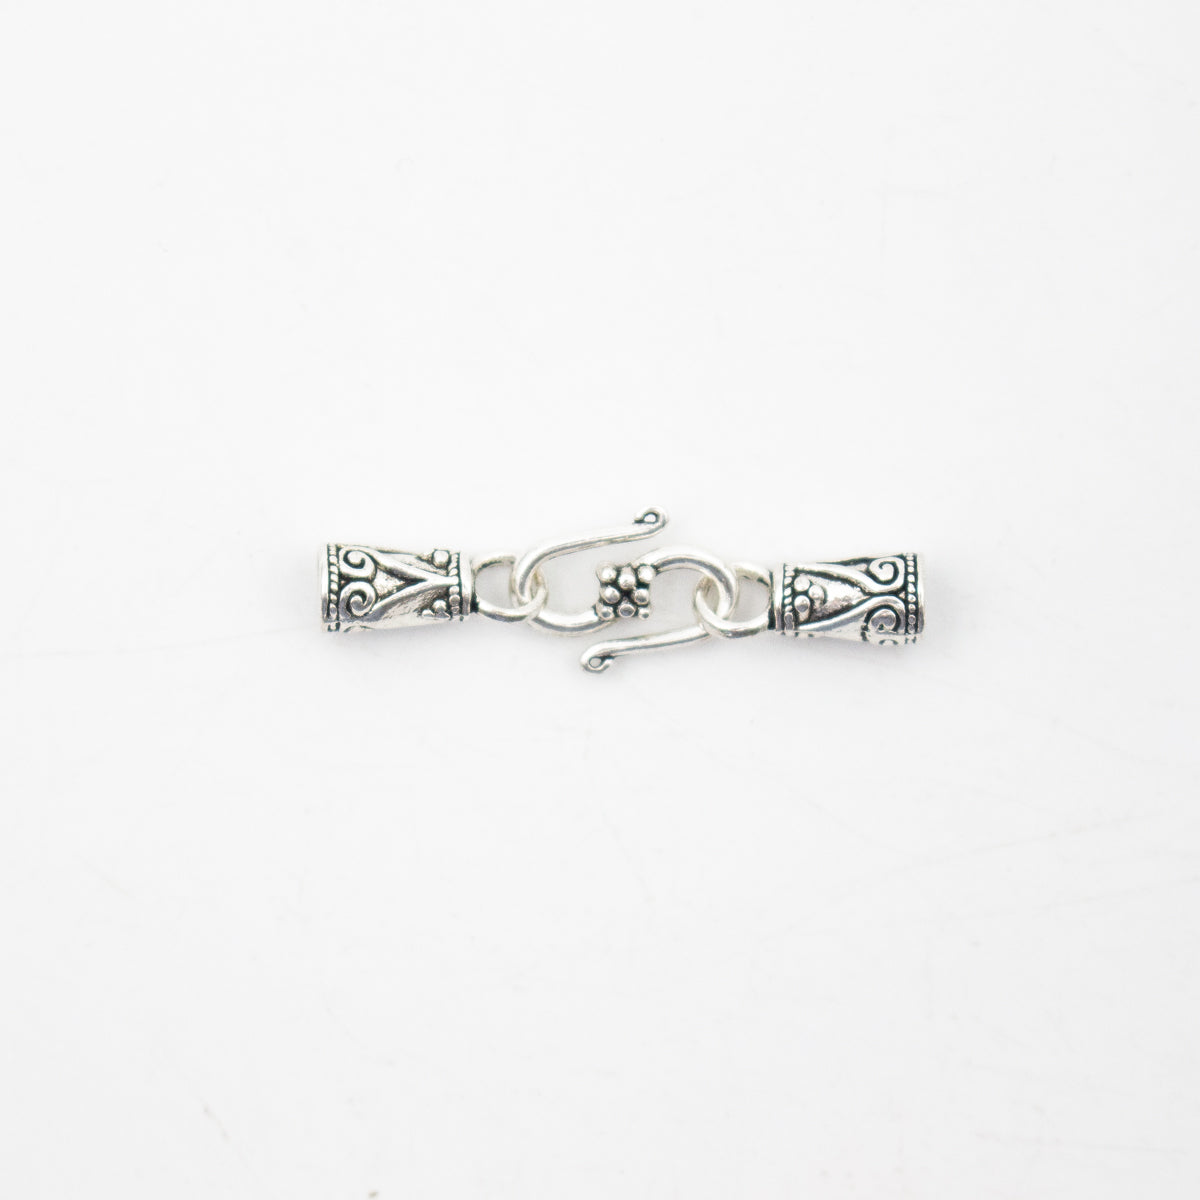 Lobster Clasp Antique Silver for round LeatherCork 3 mm closure for round LeatherCork 3 mm,clasp Jewelry supplies finding